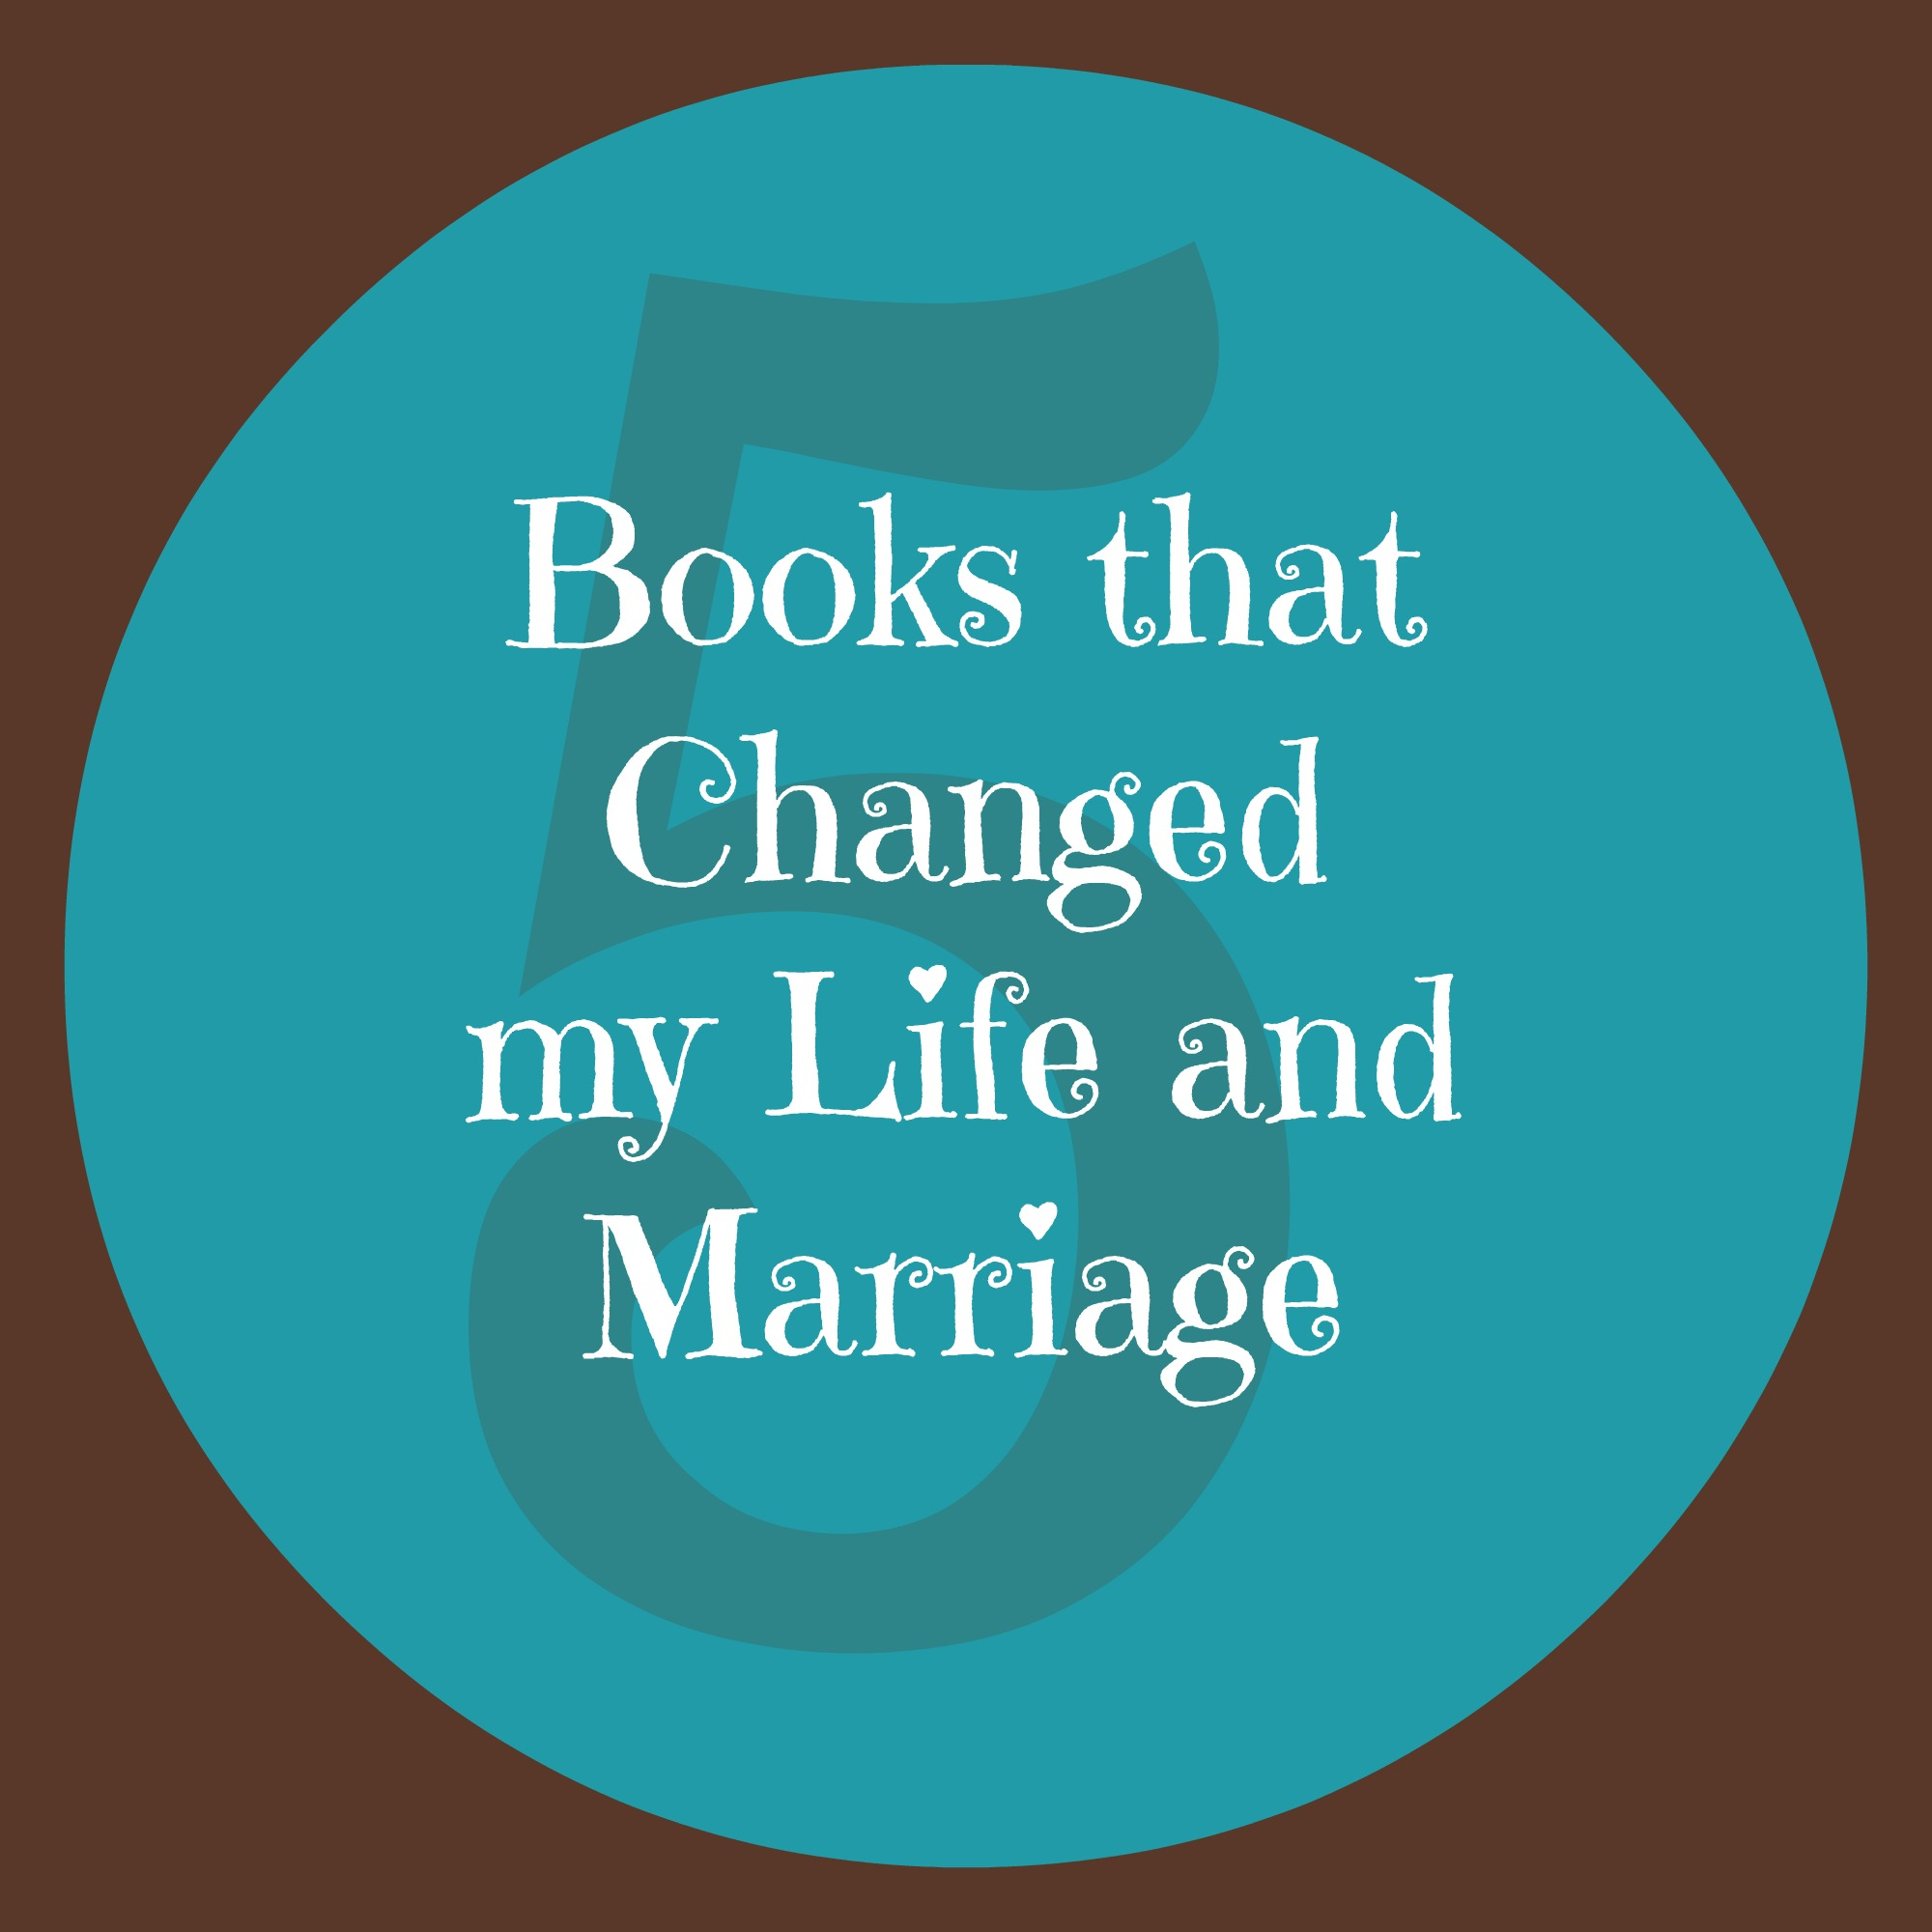 5 Books That Changed My Life and Marriage